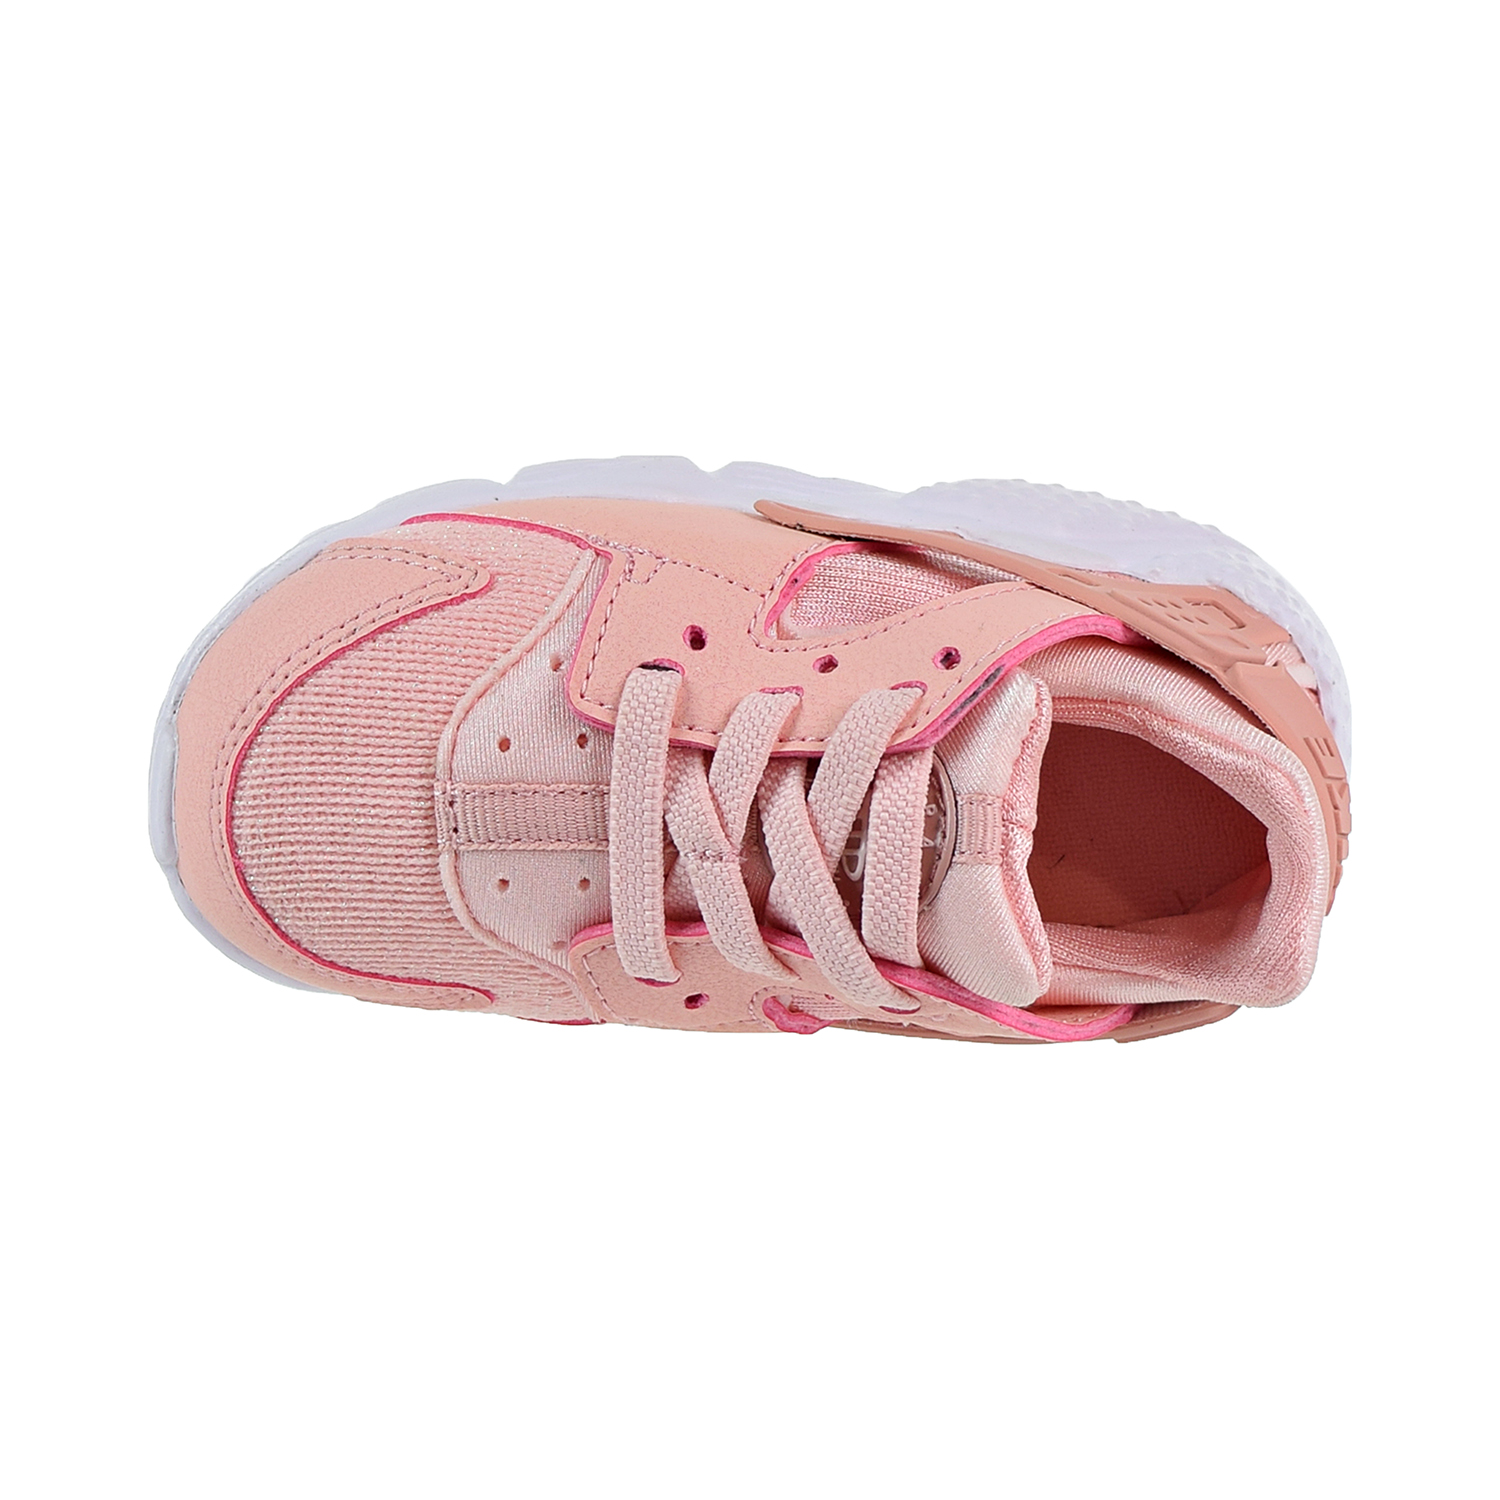 b4a4add6c025d Nike Huarache Run SE Toddler s Shoes Storm Pink Rust Pink White 859592-604